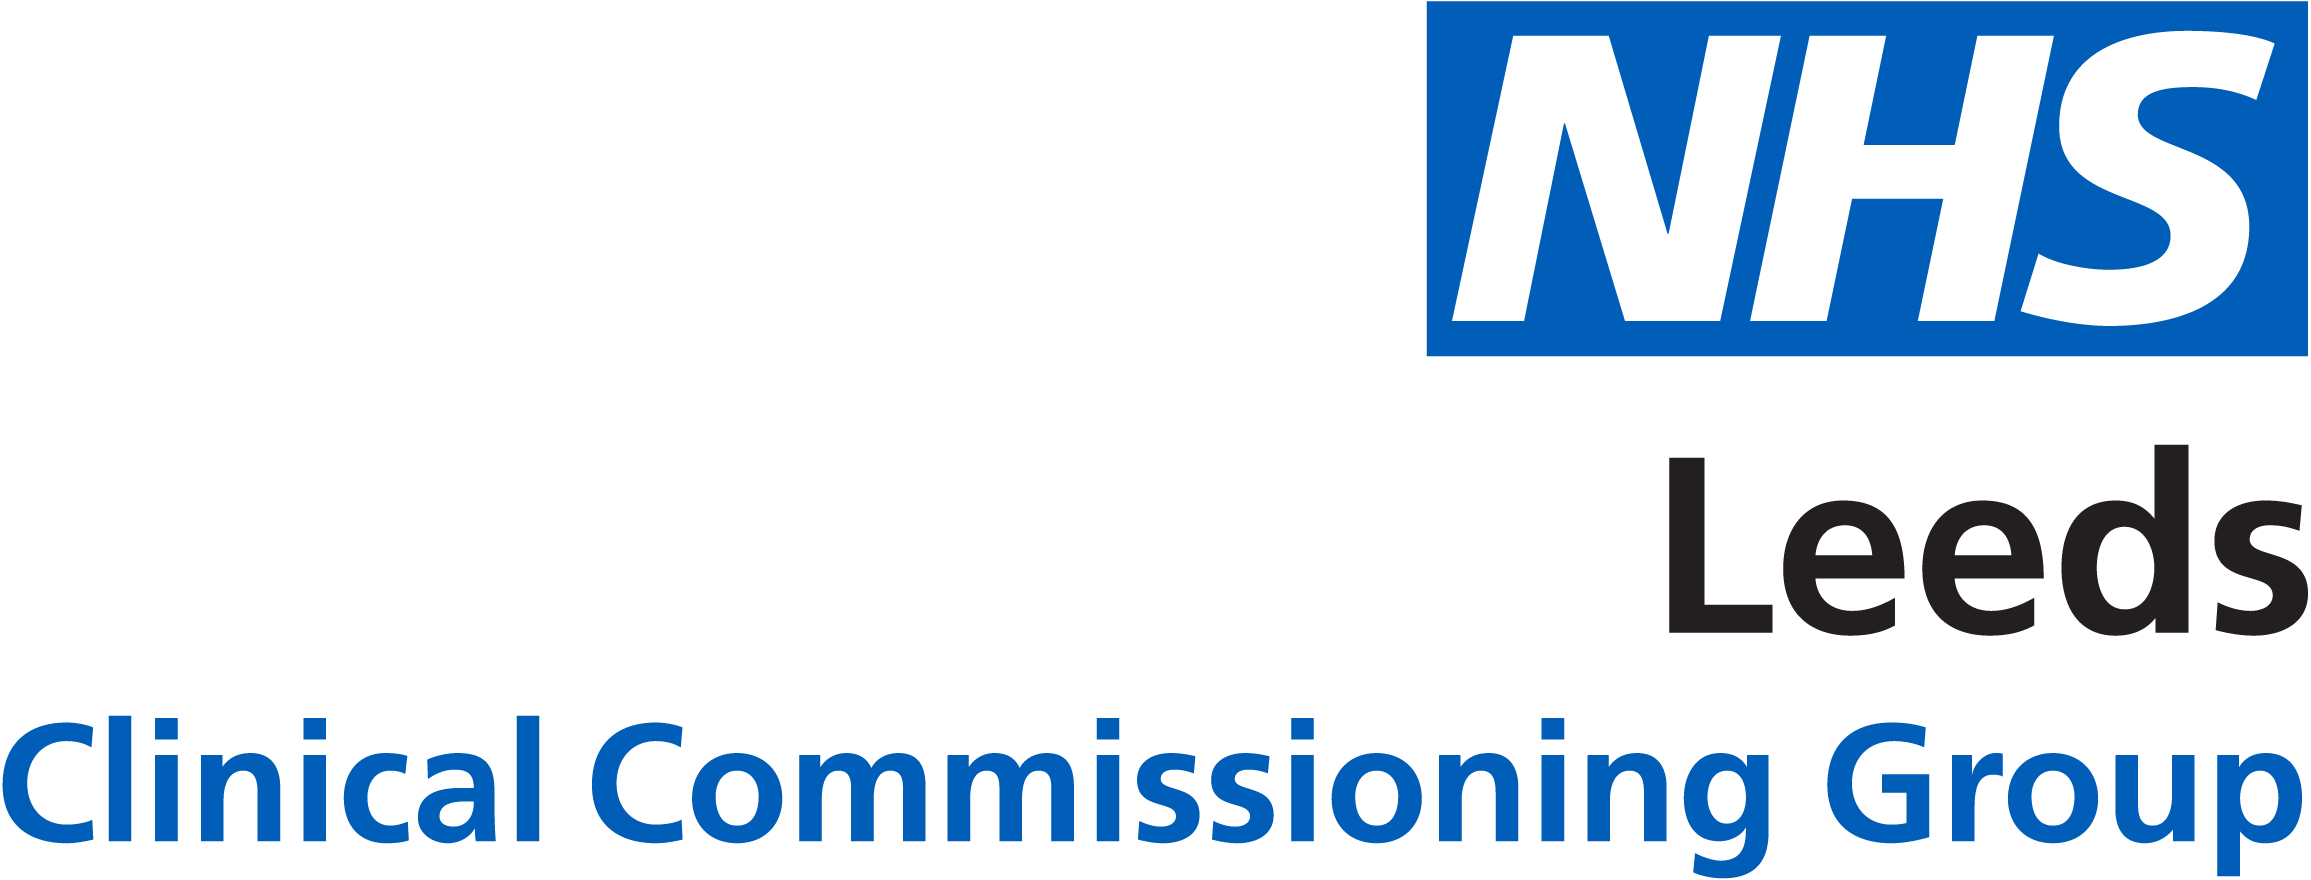 NHS Leeds Clinical Commissioning Groups Partnership